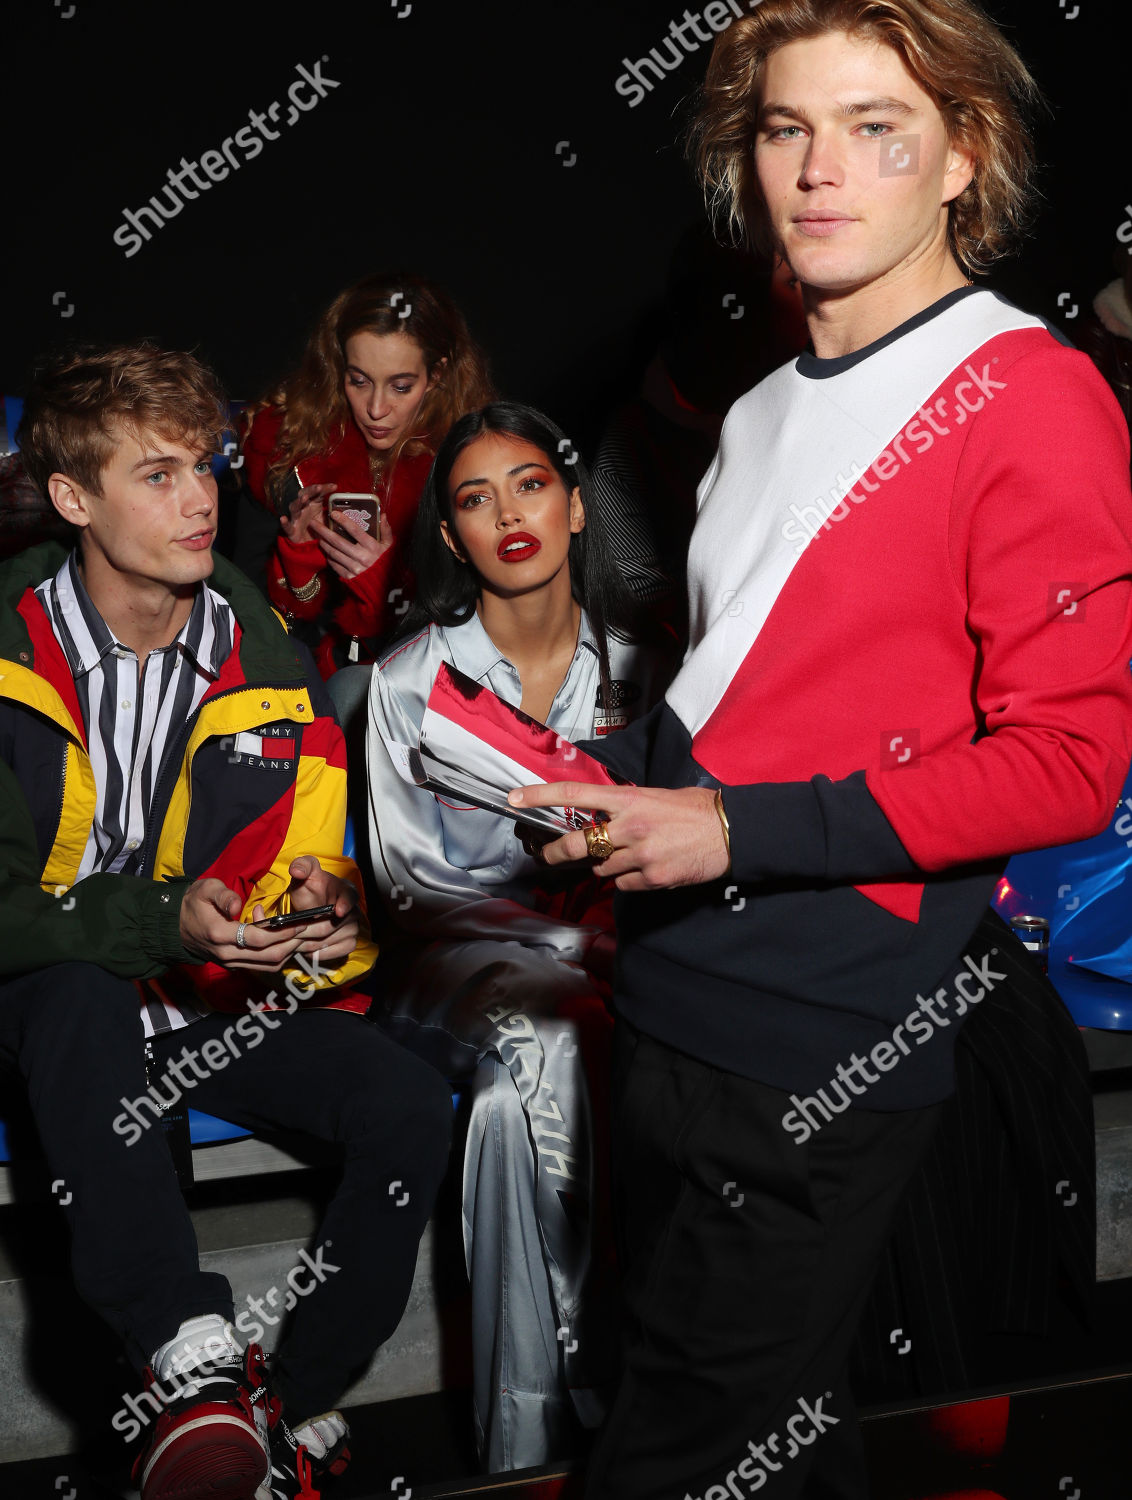 ee16eb4b Tommy Hilfiger show, Front Row, Spring Summer 2018, Milan Fashion Week,  Italy Stock Image by Shutterstock for editorial use, Feb 25, 2018